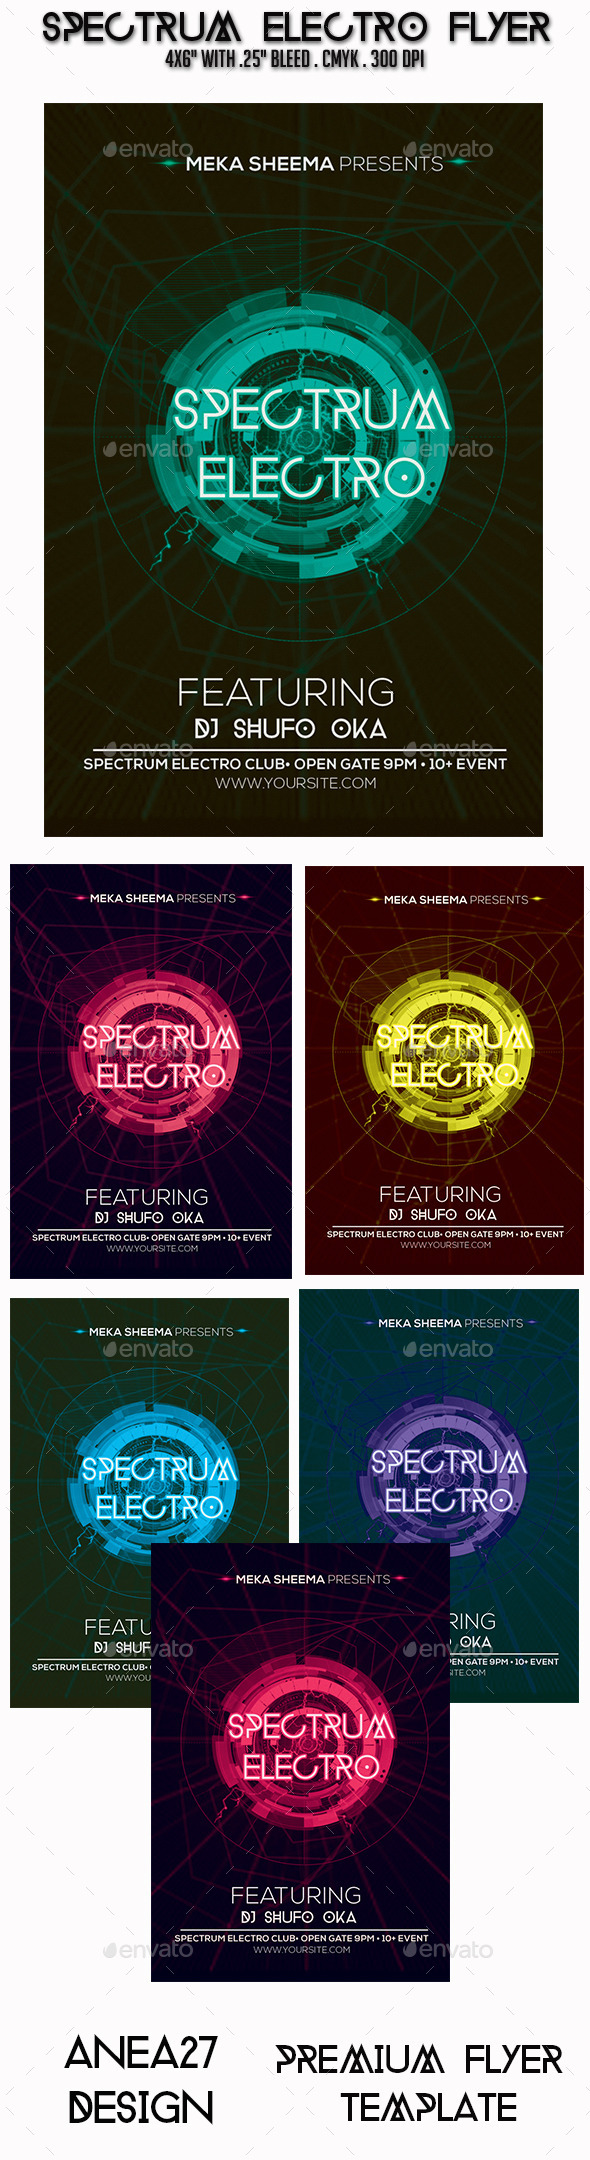 GraphicRiver Spectrum Electro Flyer 9554249